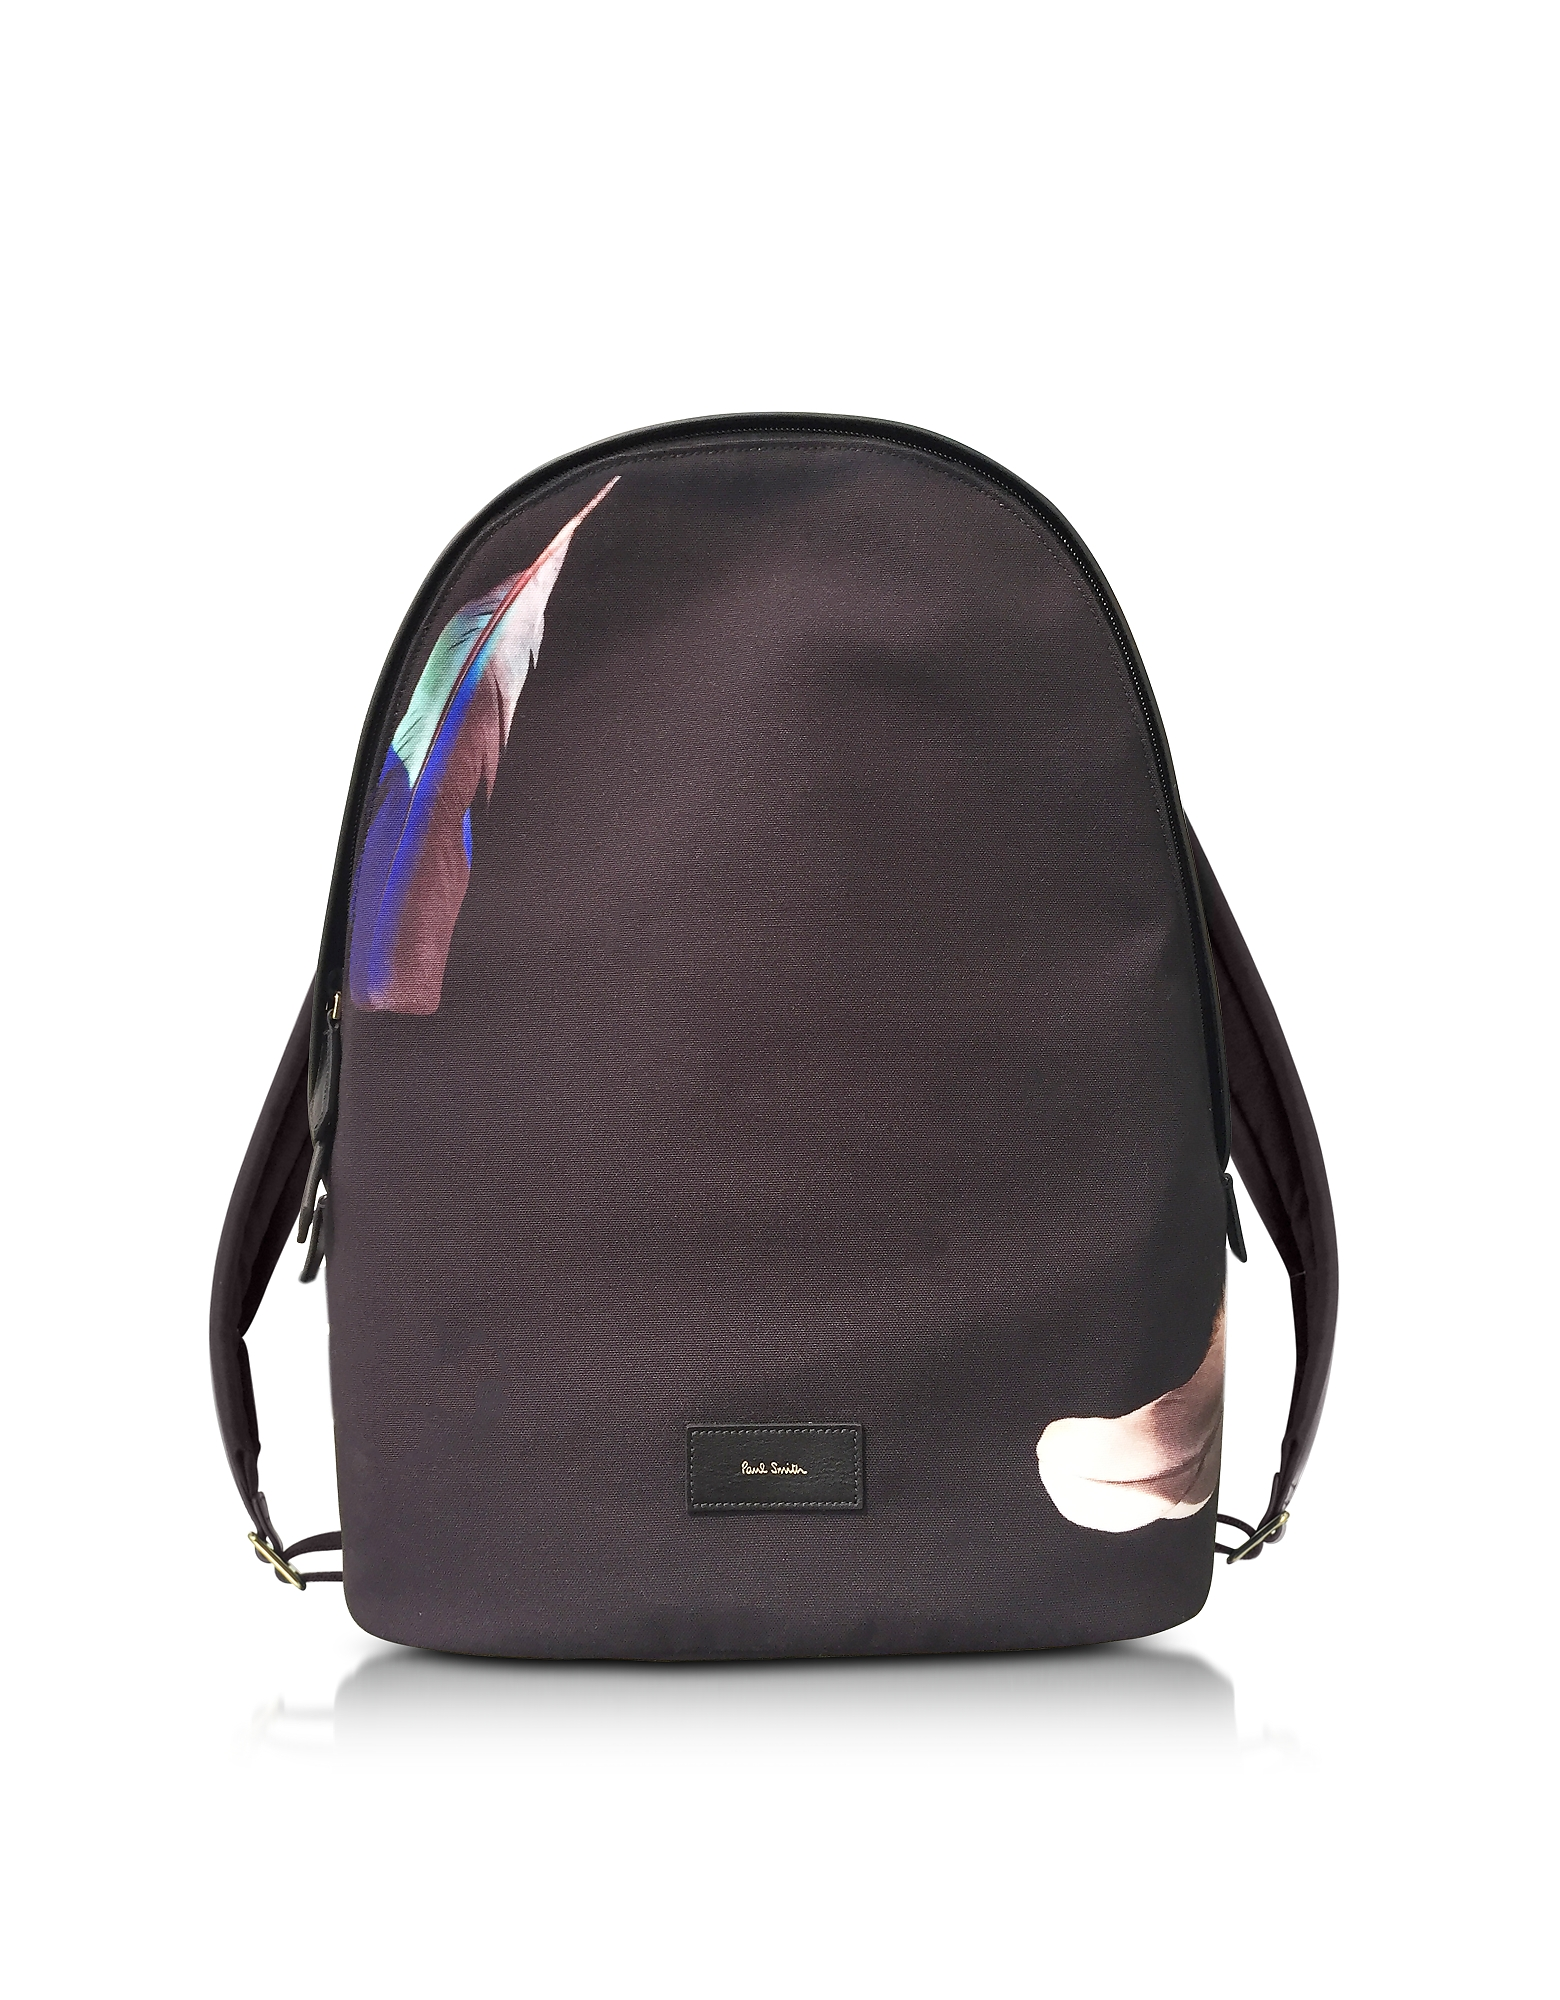 Paul Smith Backpacks, Black Canvas Feather Print Backpack